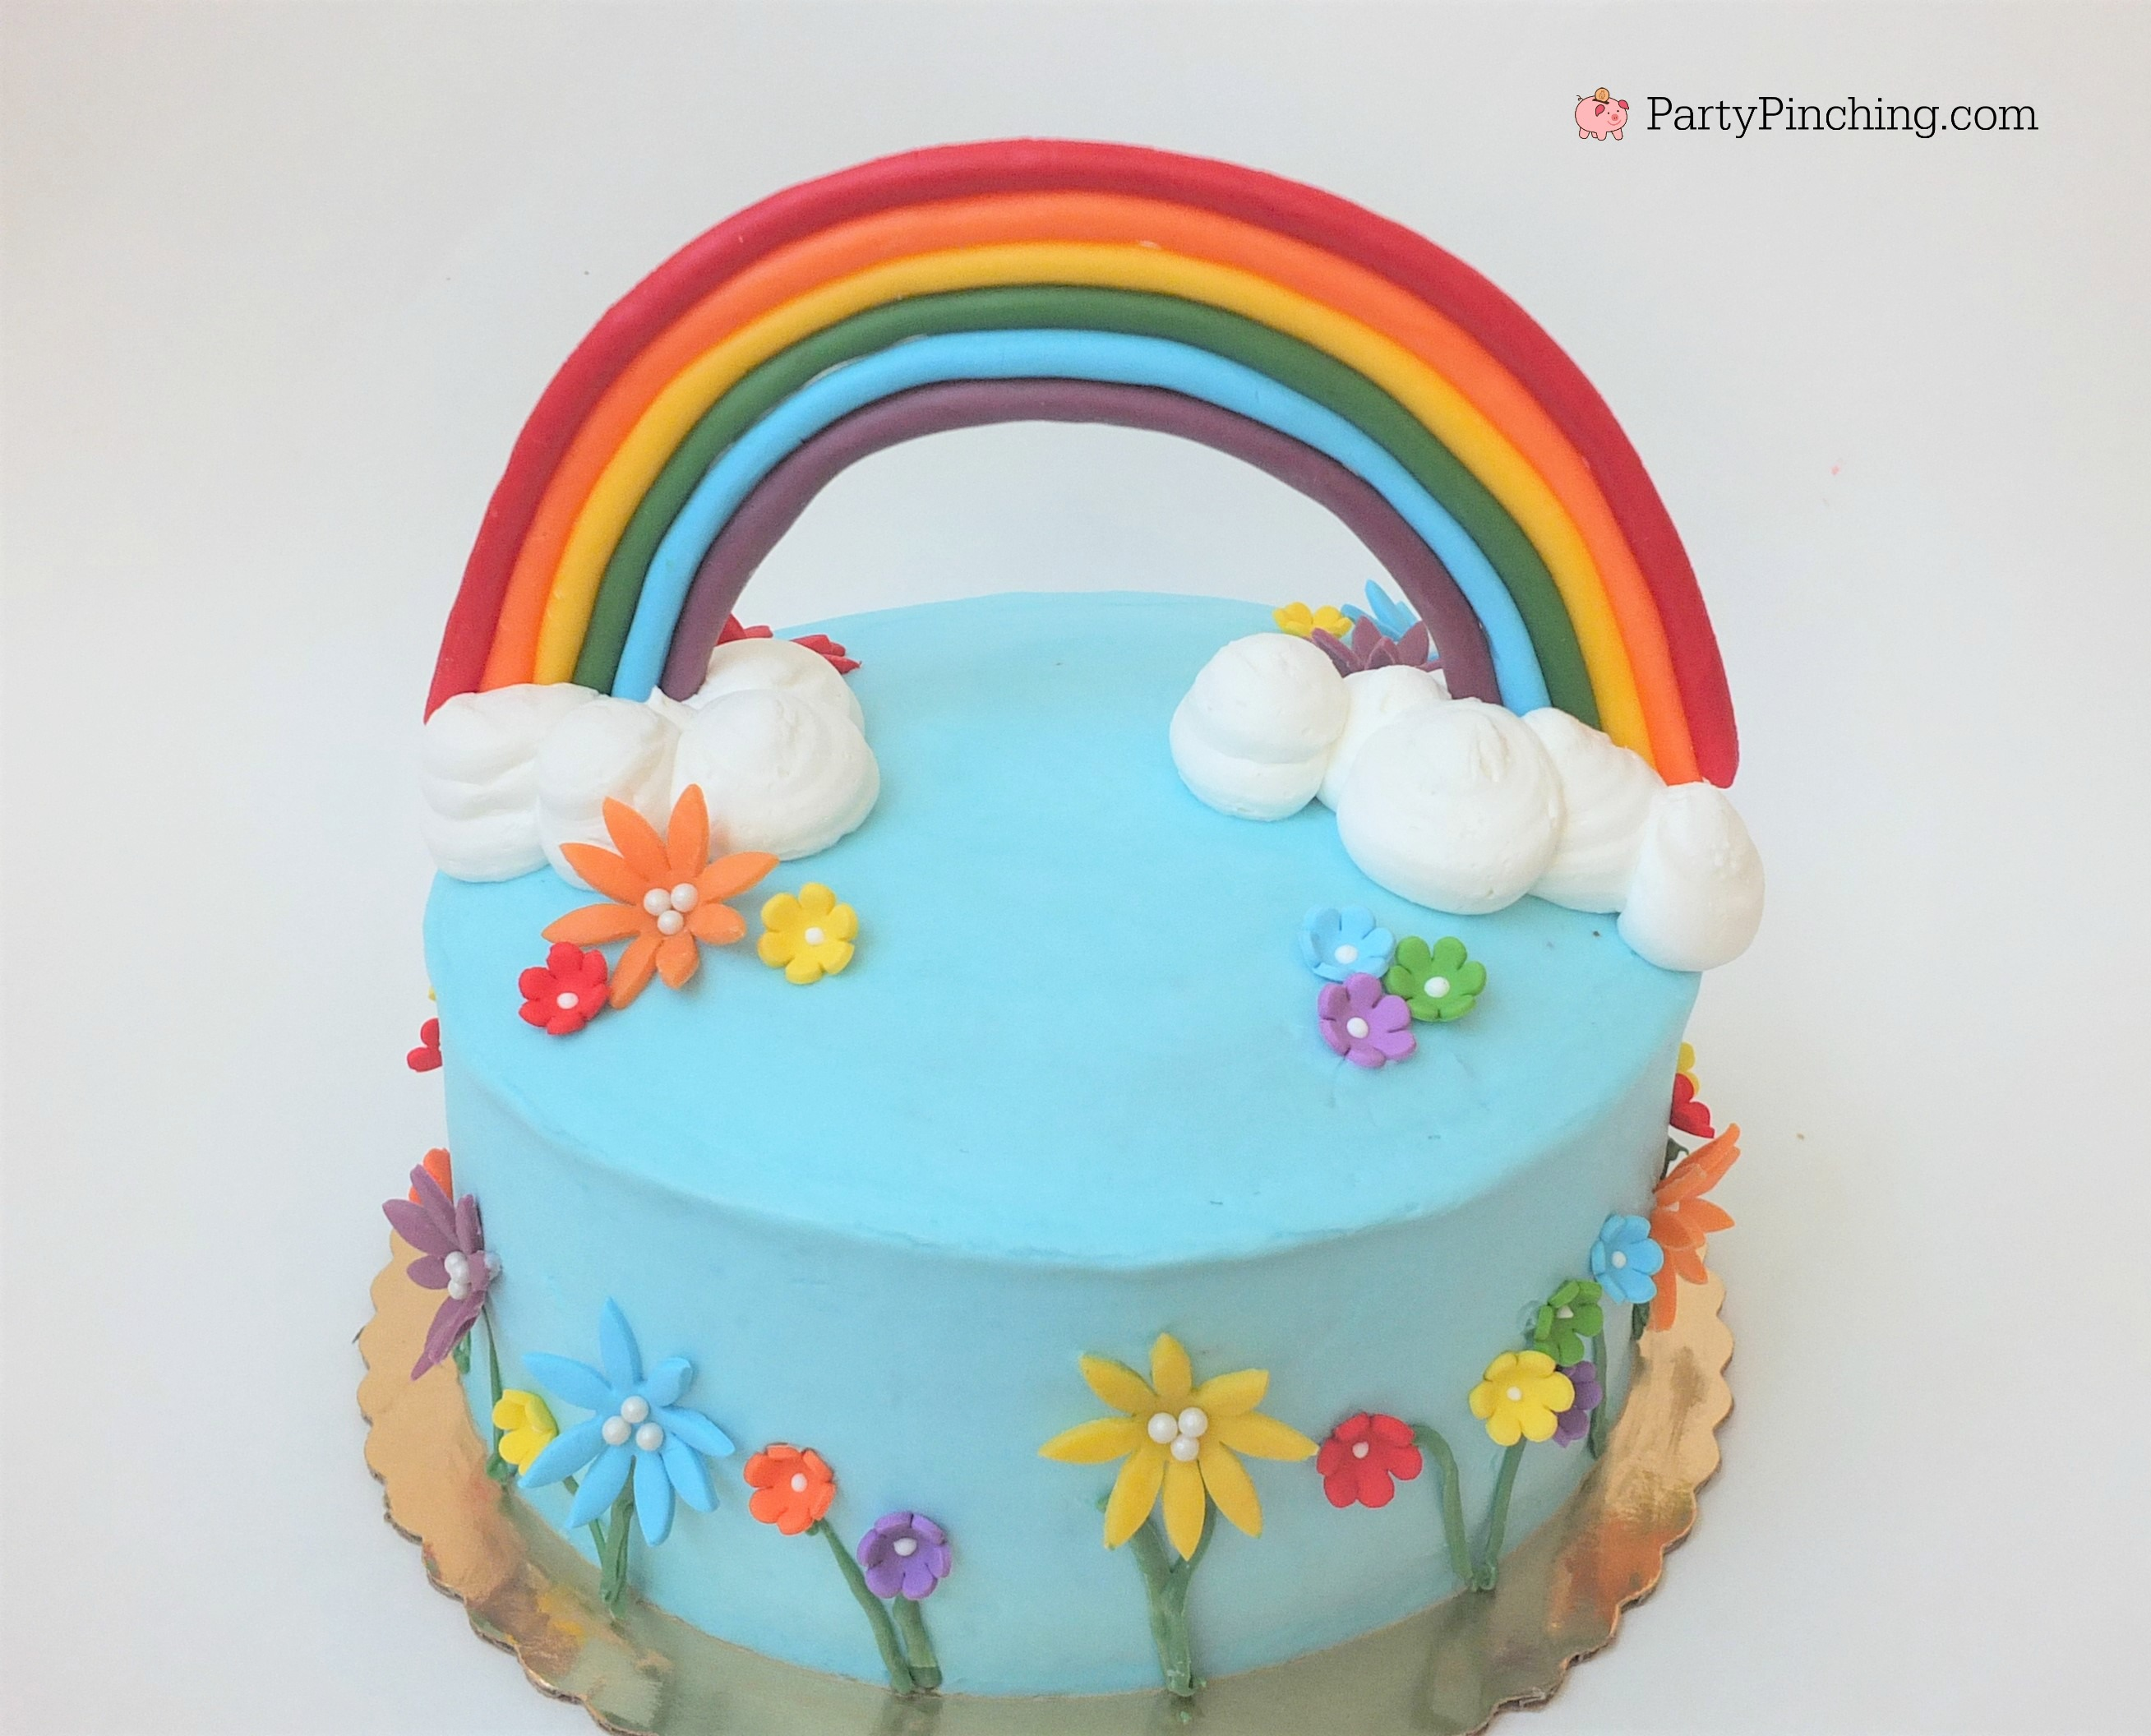 Spring Rainbow Cake With Bright Cheerful Flowers And